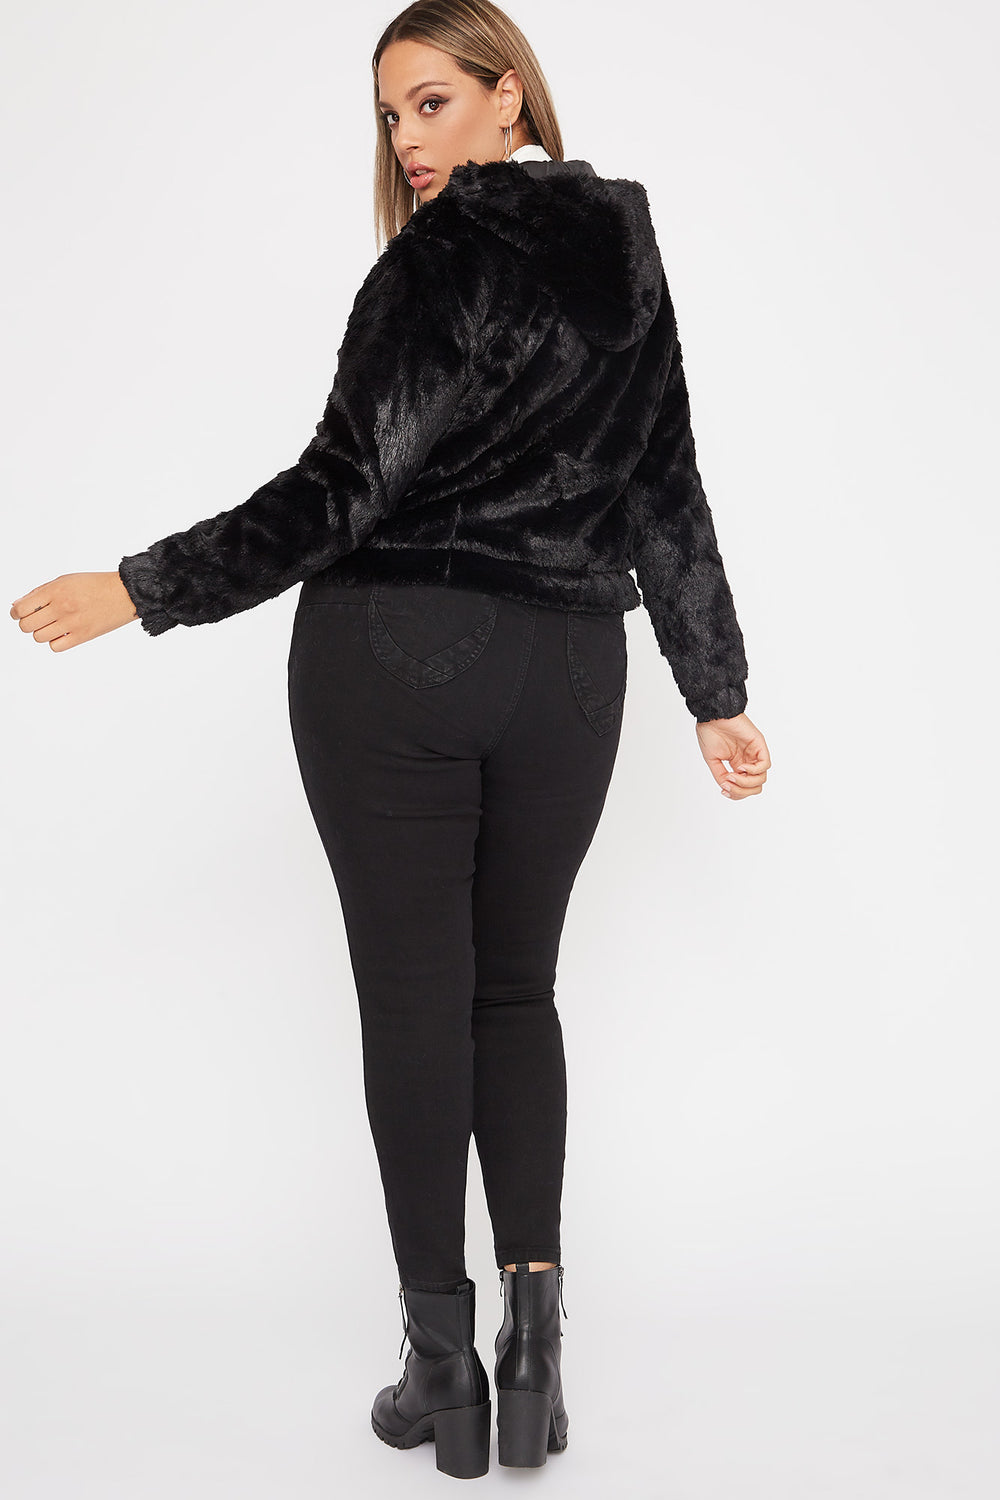 Plus Size Faux-Fur Zip-Up Hooded Bomber Jacket Black